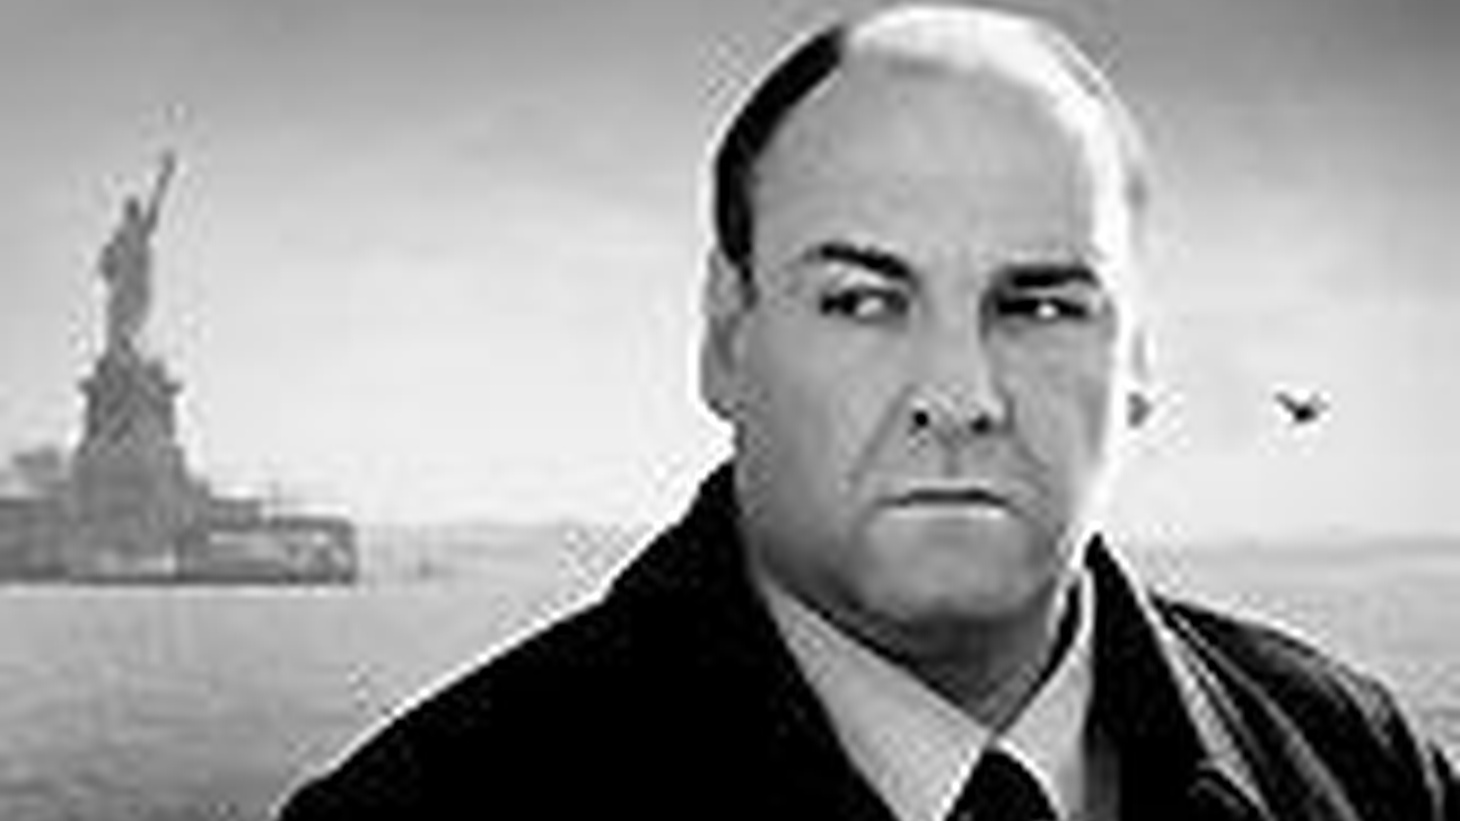 I'll confess it, I love The Sopranos.  Through the years, I've tried to keep my affection in check. But the fact is, this multilayered mob drama is a masterpiece, and as we enter the home stretch of nine episodes leading to the series' conclusion in June, I know how the end is gonna make me feel: like when I reach the last page of a really great novel...